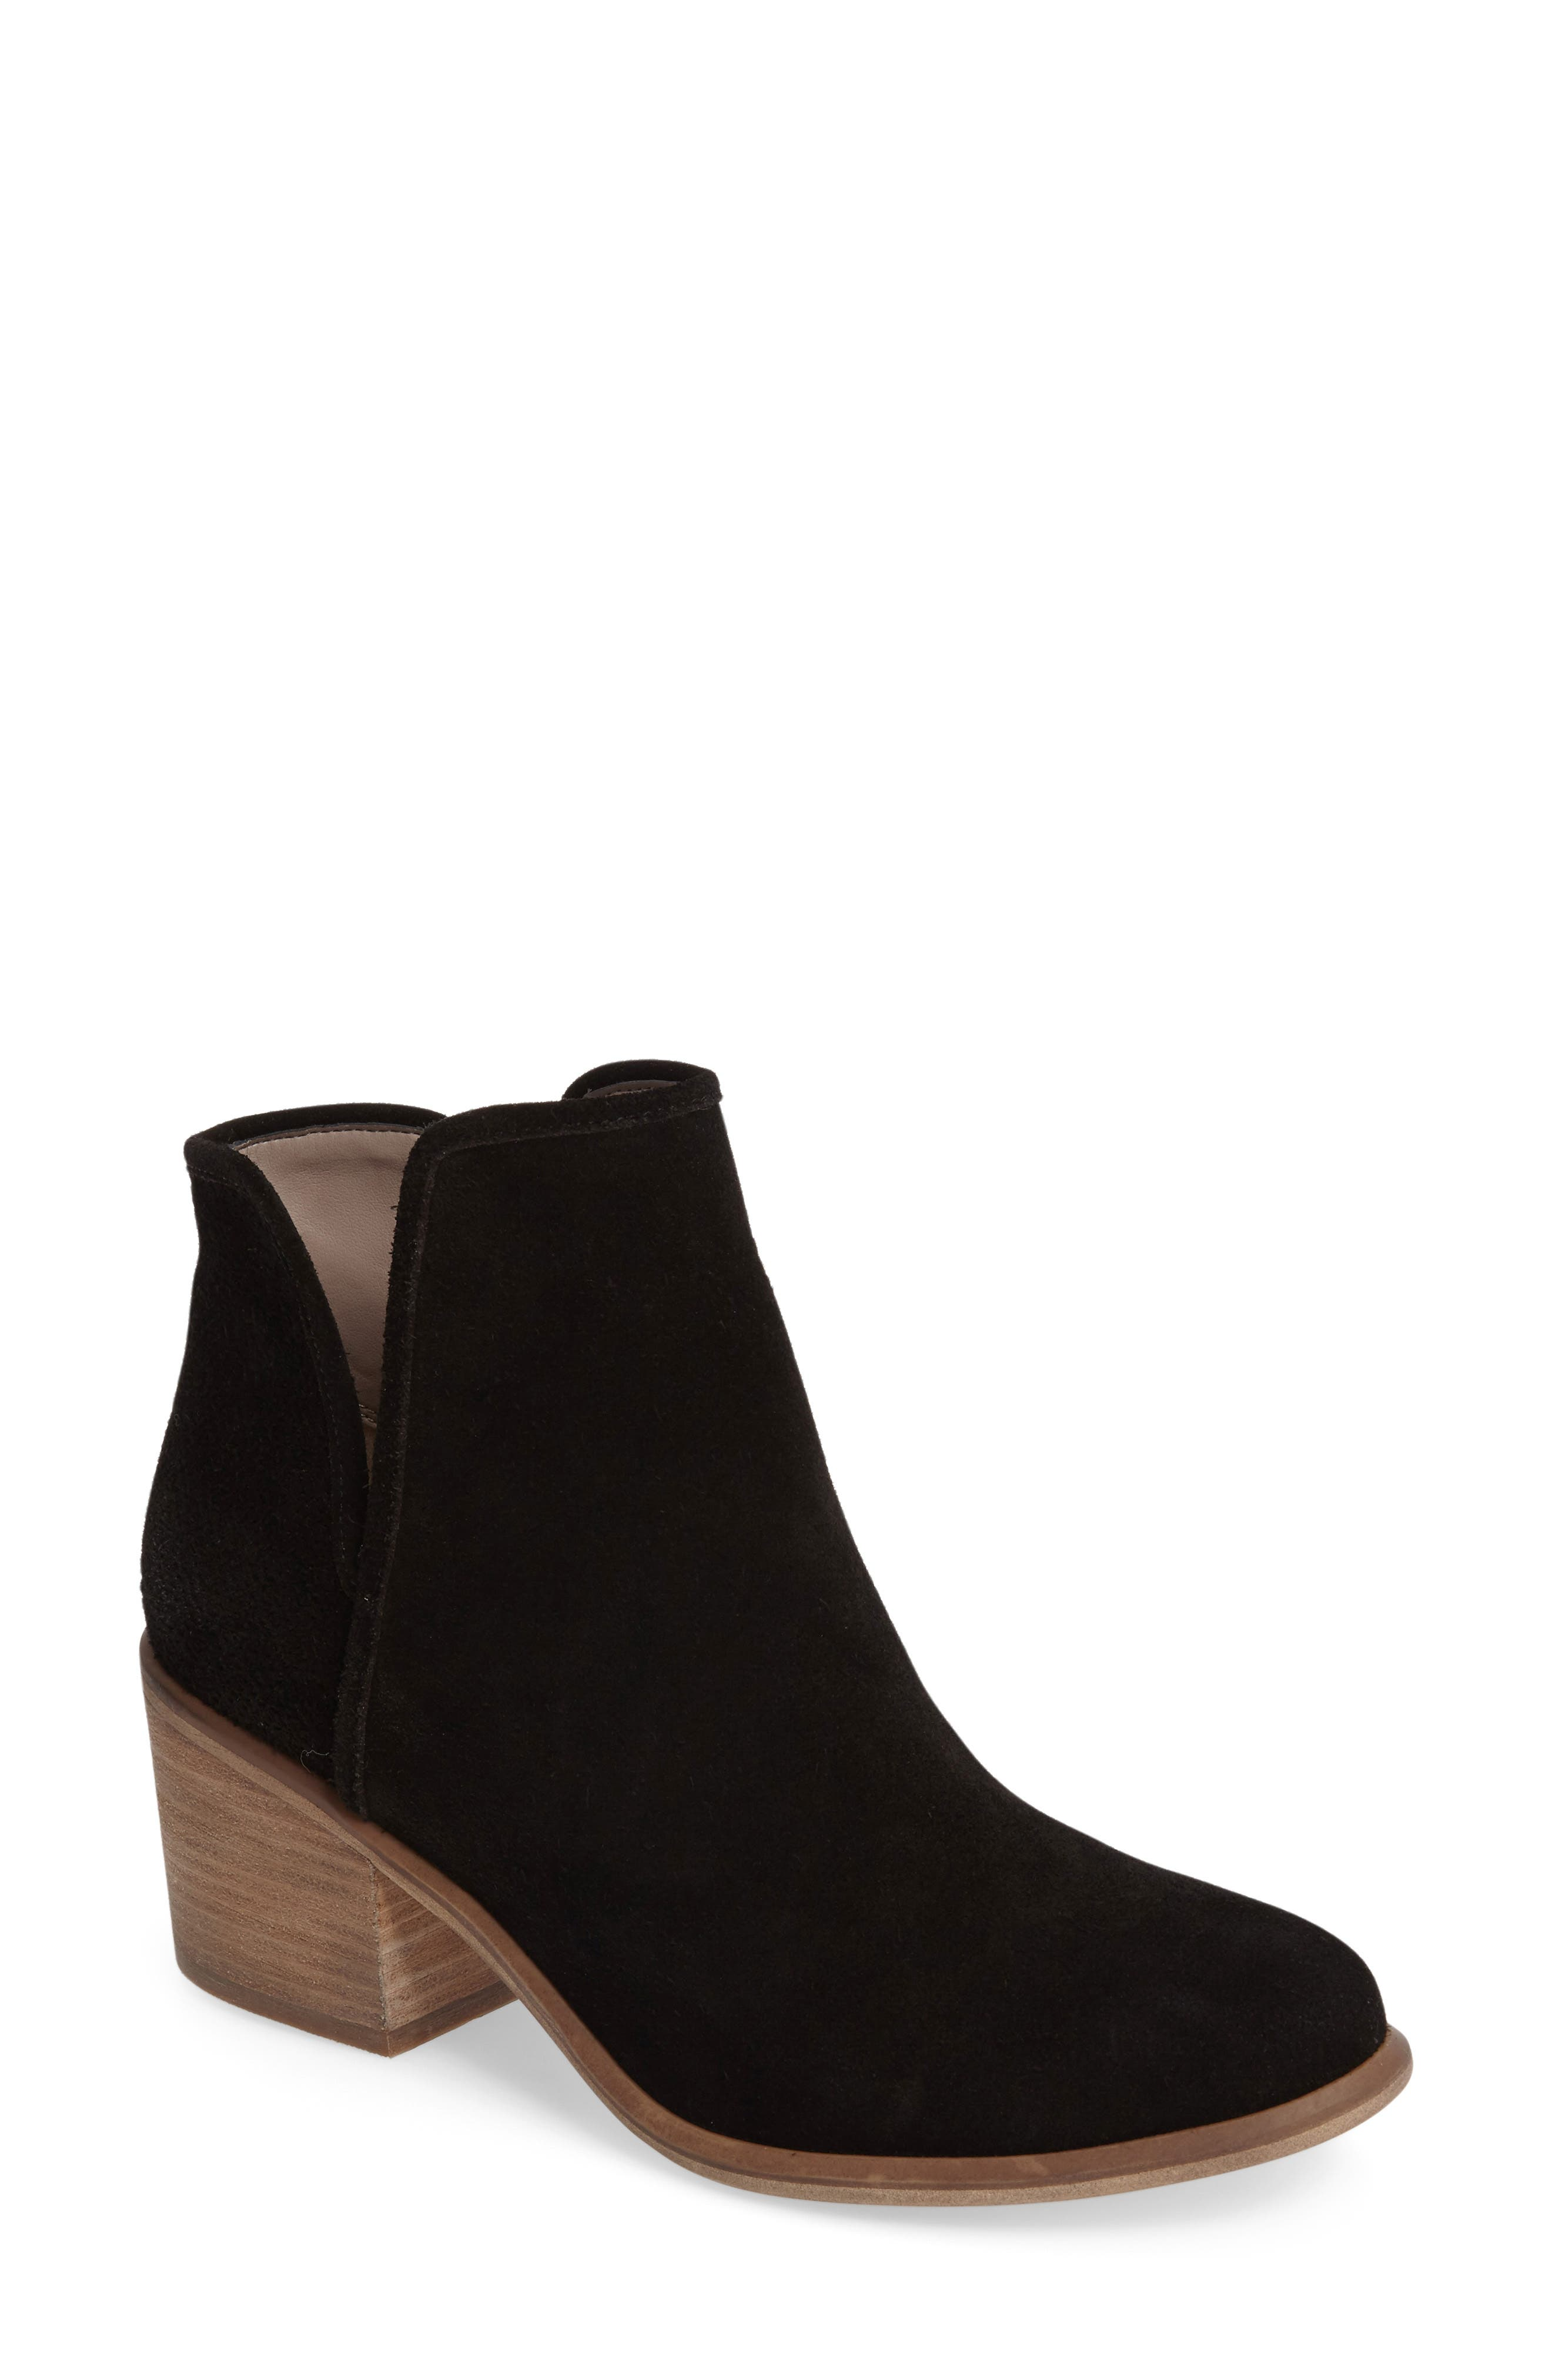 Women's Black Boots, Boots for Women | Nordstrom